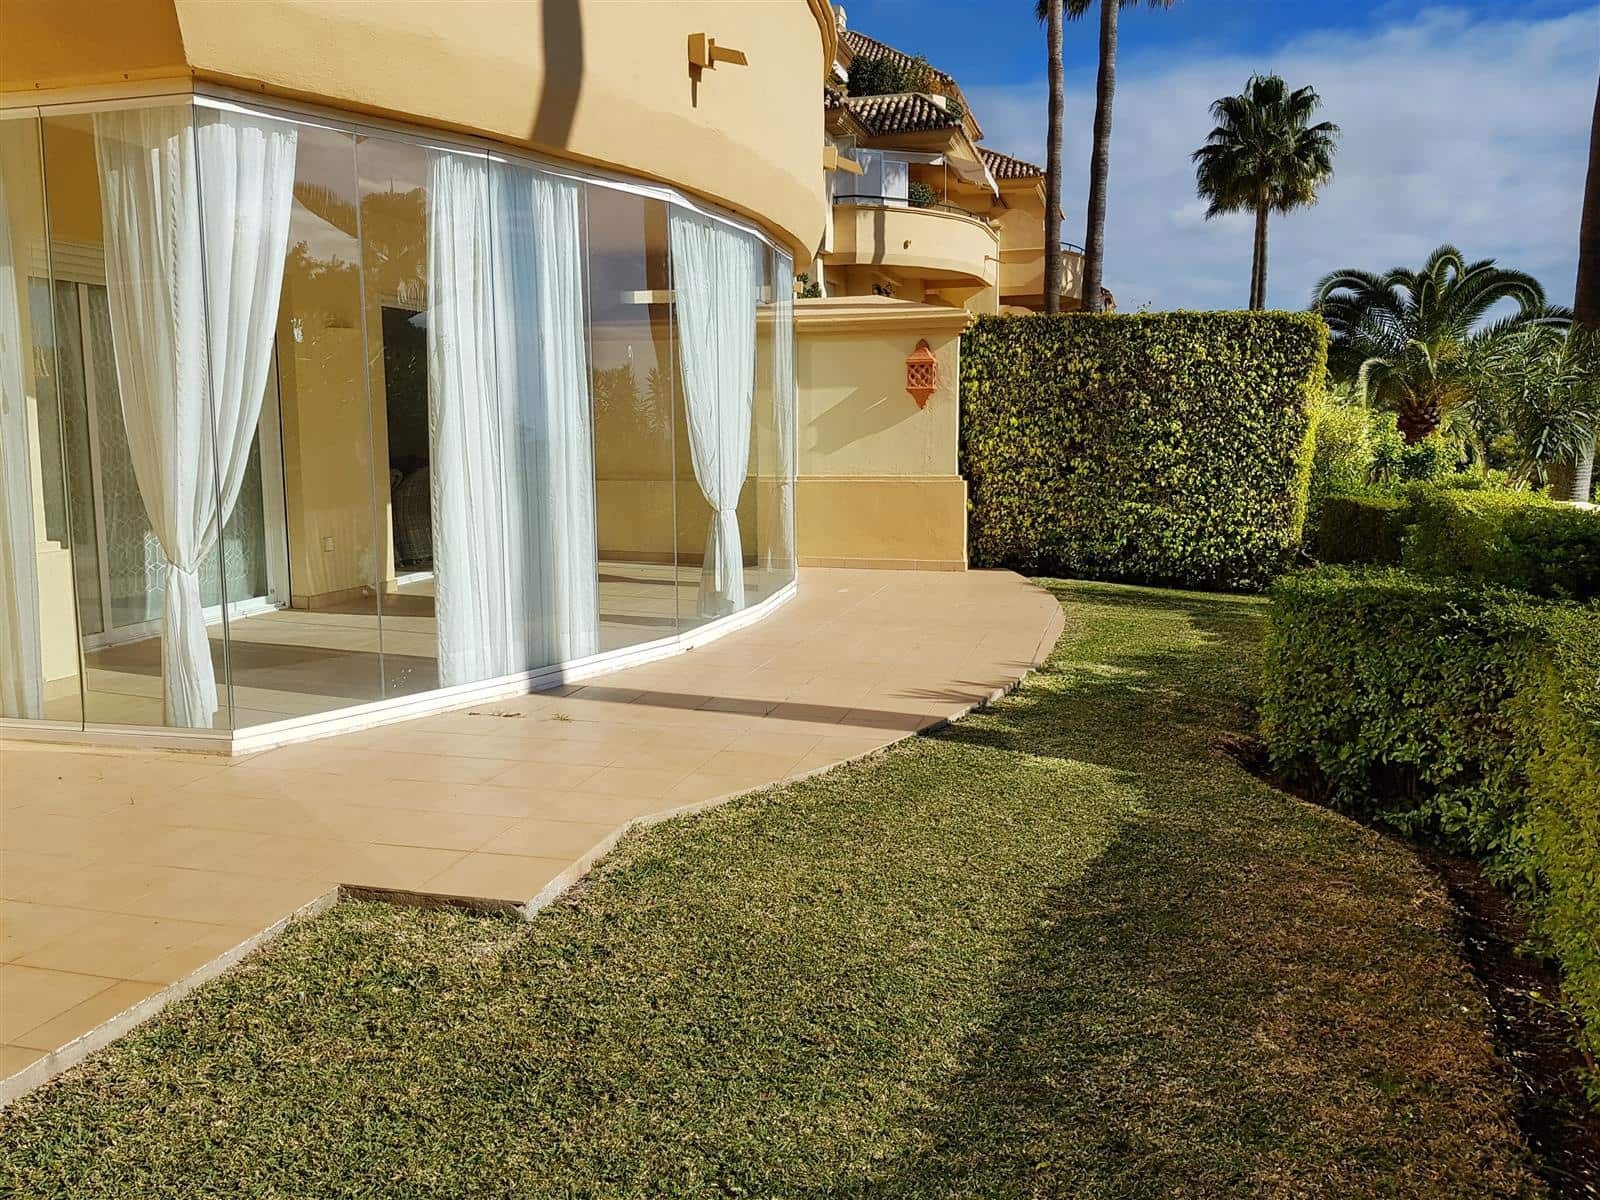 2 bedroom Apartment for sale in Marbella with pool garage - € 350,000 (Ref: 5040750)